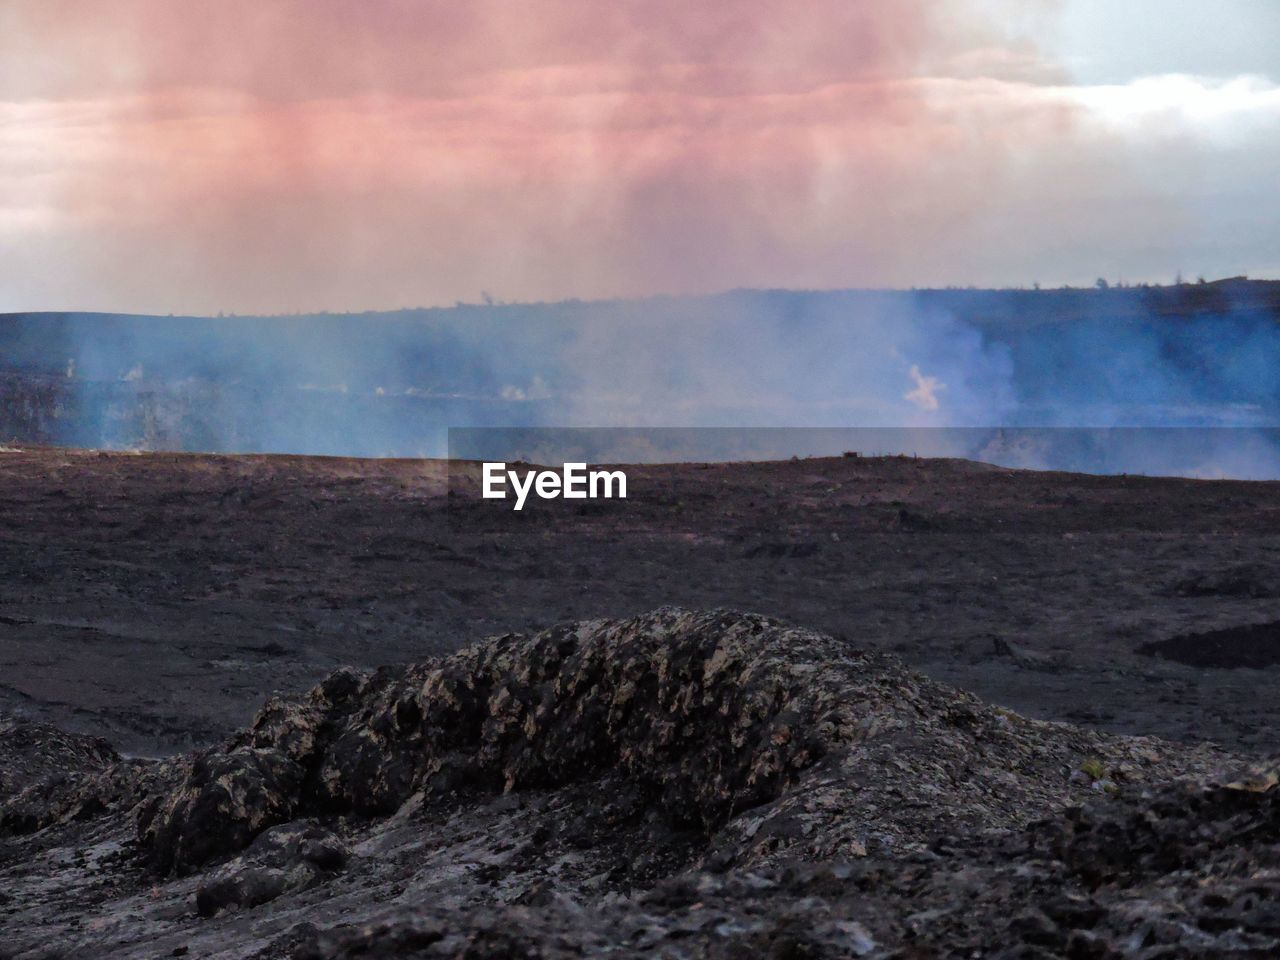 geology, smoke - physical structure, nature, landscape, no people, volcanic landscape, physical geography, power in nature, rock - object, volcano, sky, scenics, erupting, steam, beauty in nature, outdoors, geyser, heat - temperature, day, volcanic crater, lava, tranquil scene, hot spring, tranquility, mountain, cloud - sky, motion, ash, water, close-up, molten